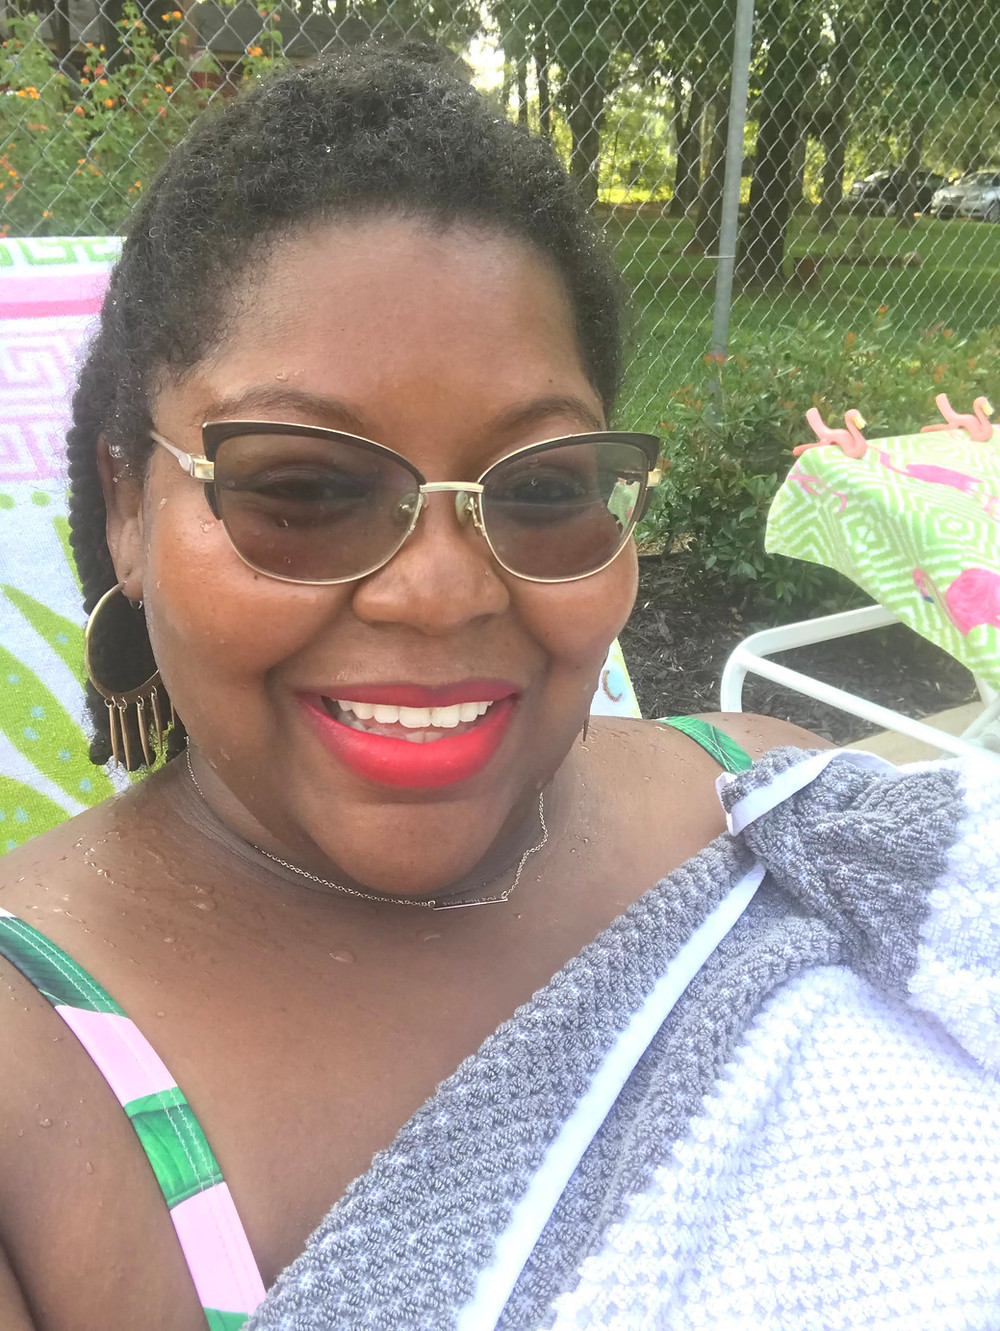 Courtney Tierra smiling while wearing sunglasses and bright lipstick while wrapped in a beach towel.